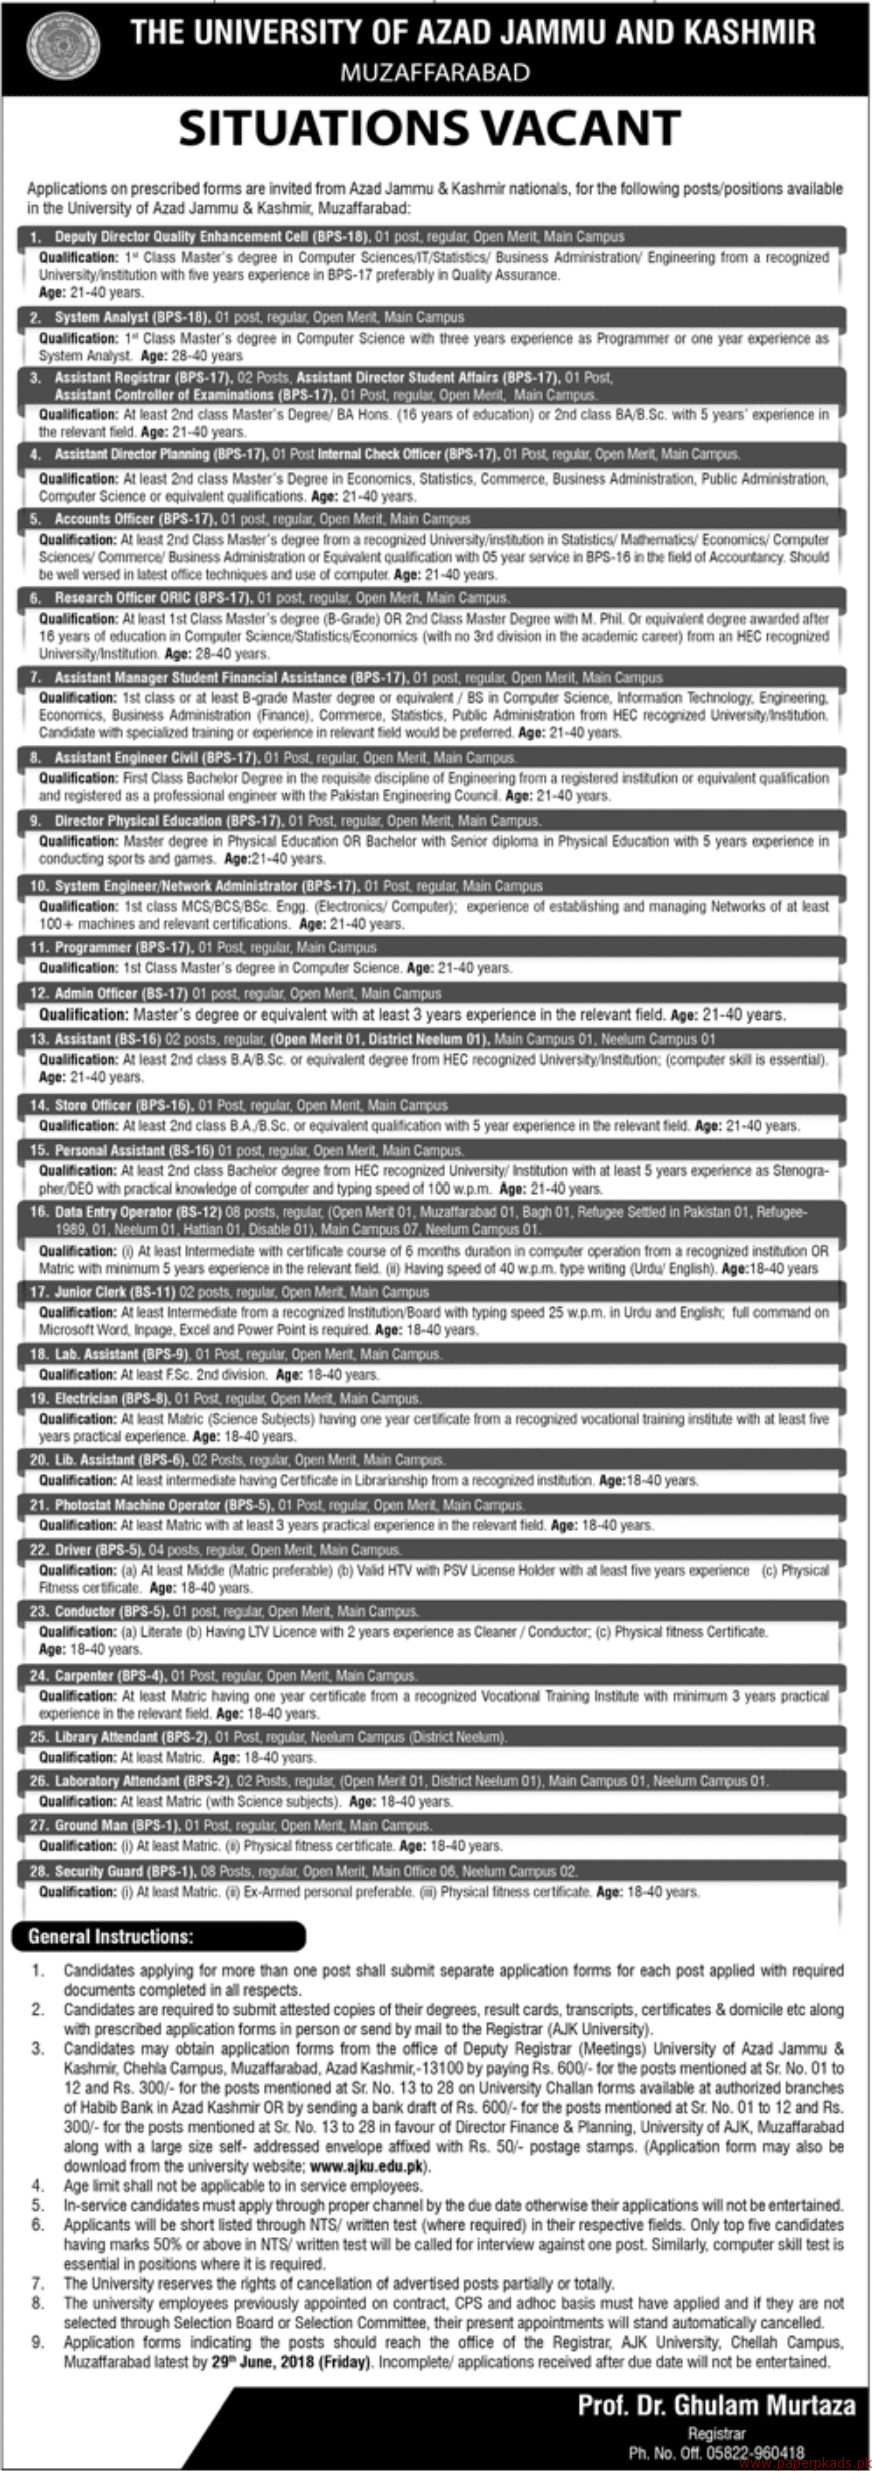 The University of Azad Jammu & kashmir Jobs 2018 Latest